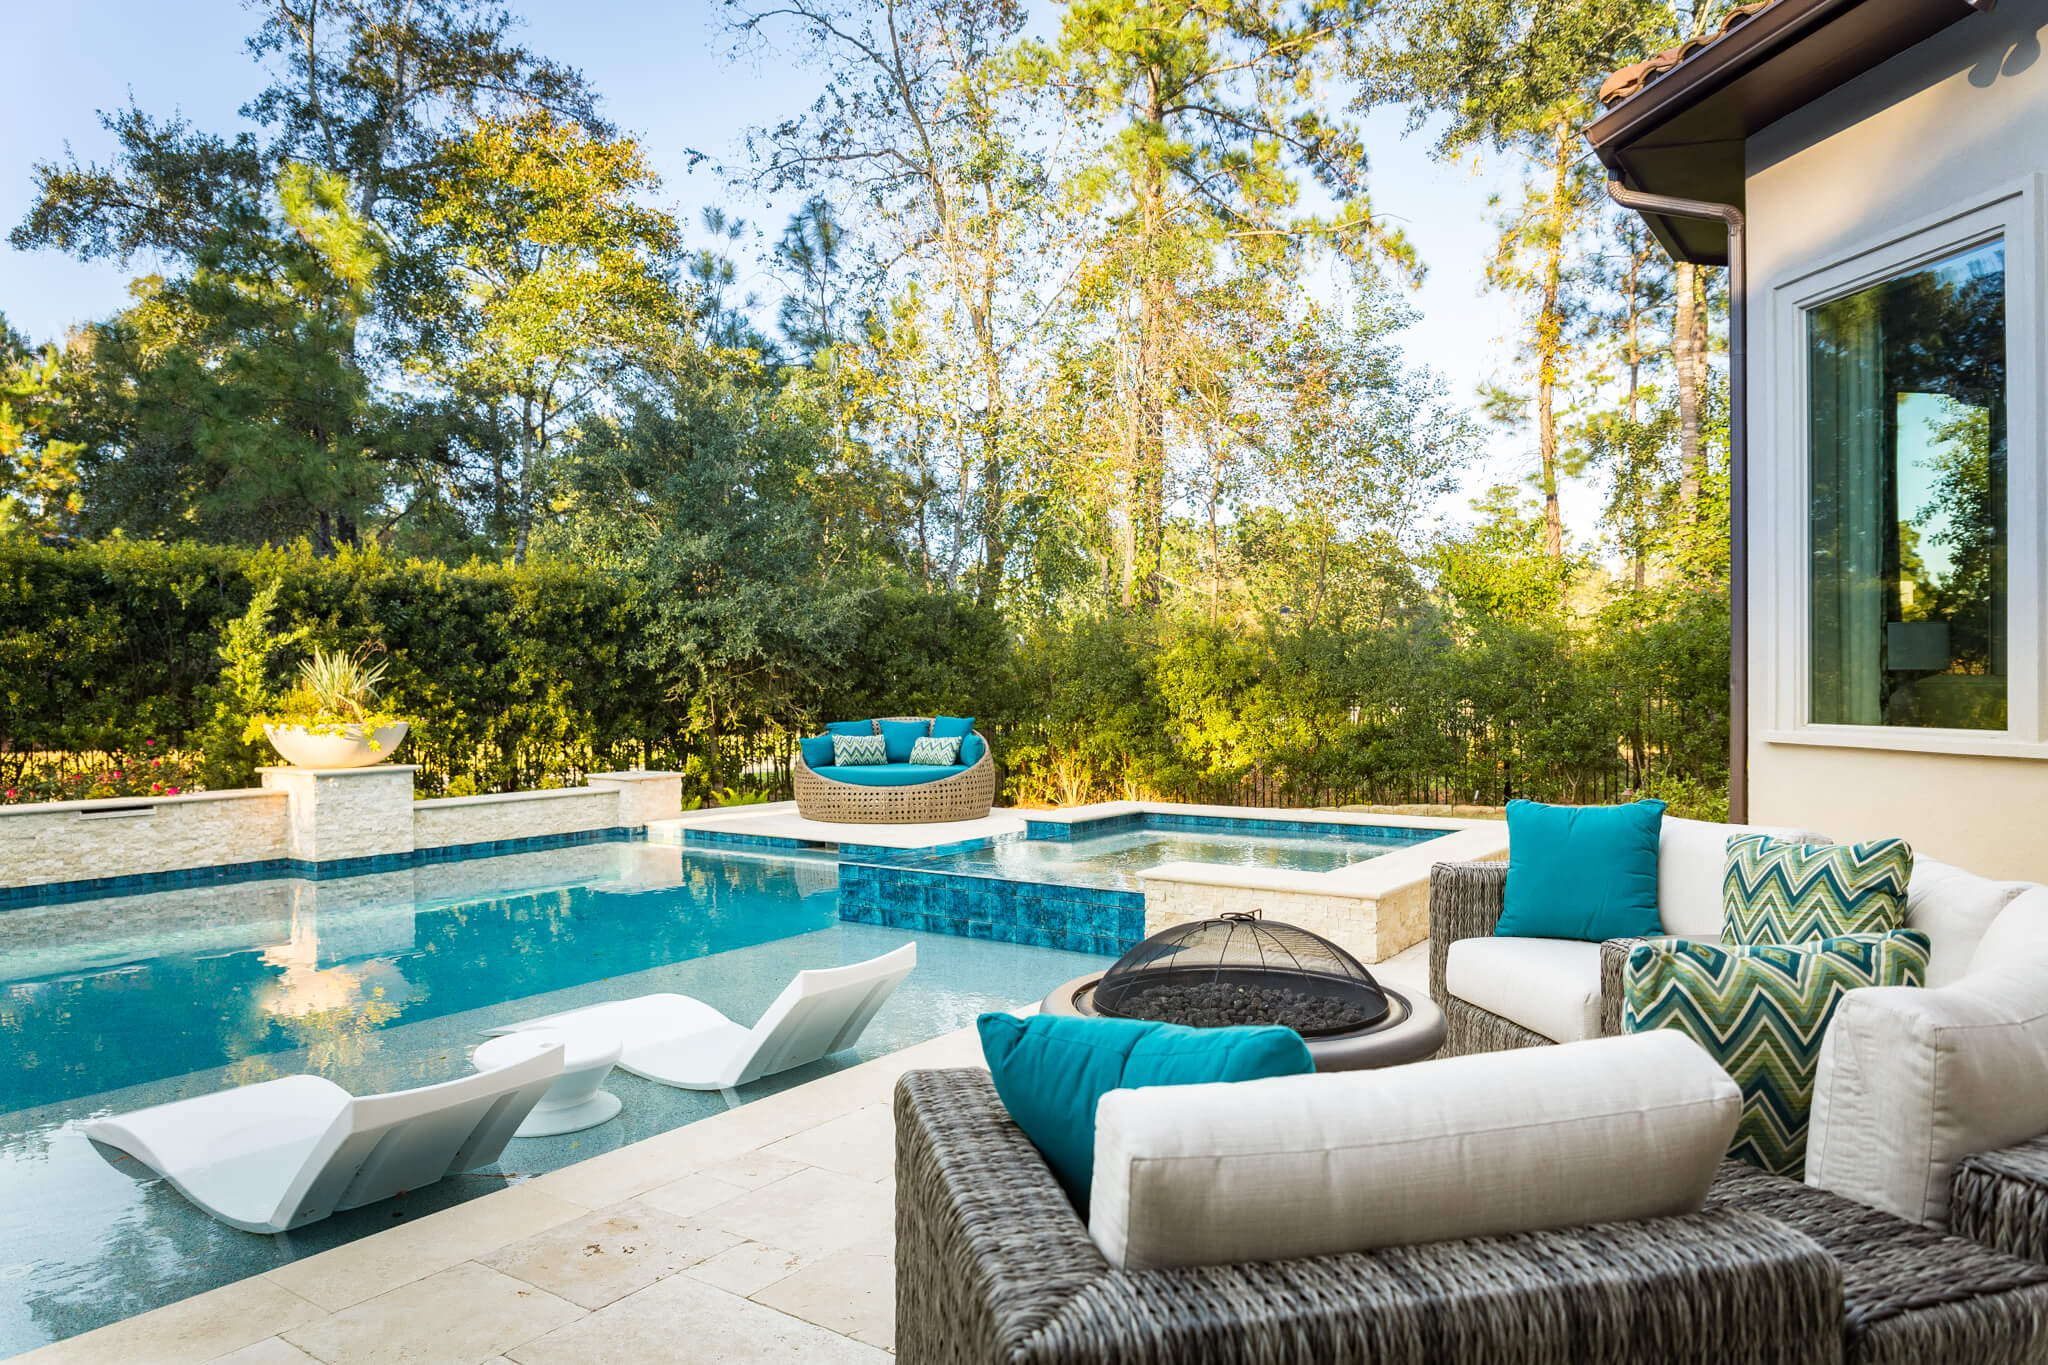 Outdoor Living posts are popular in spring months because people are planning for summer | Blog content ideas for interior designers | Outdoor living furnishings, Carla Aston - Designer, Colleen Scott - Photographer